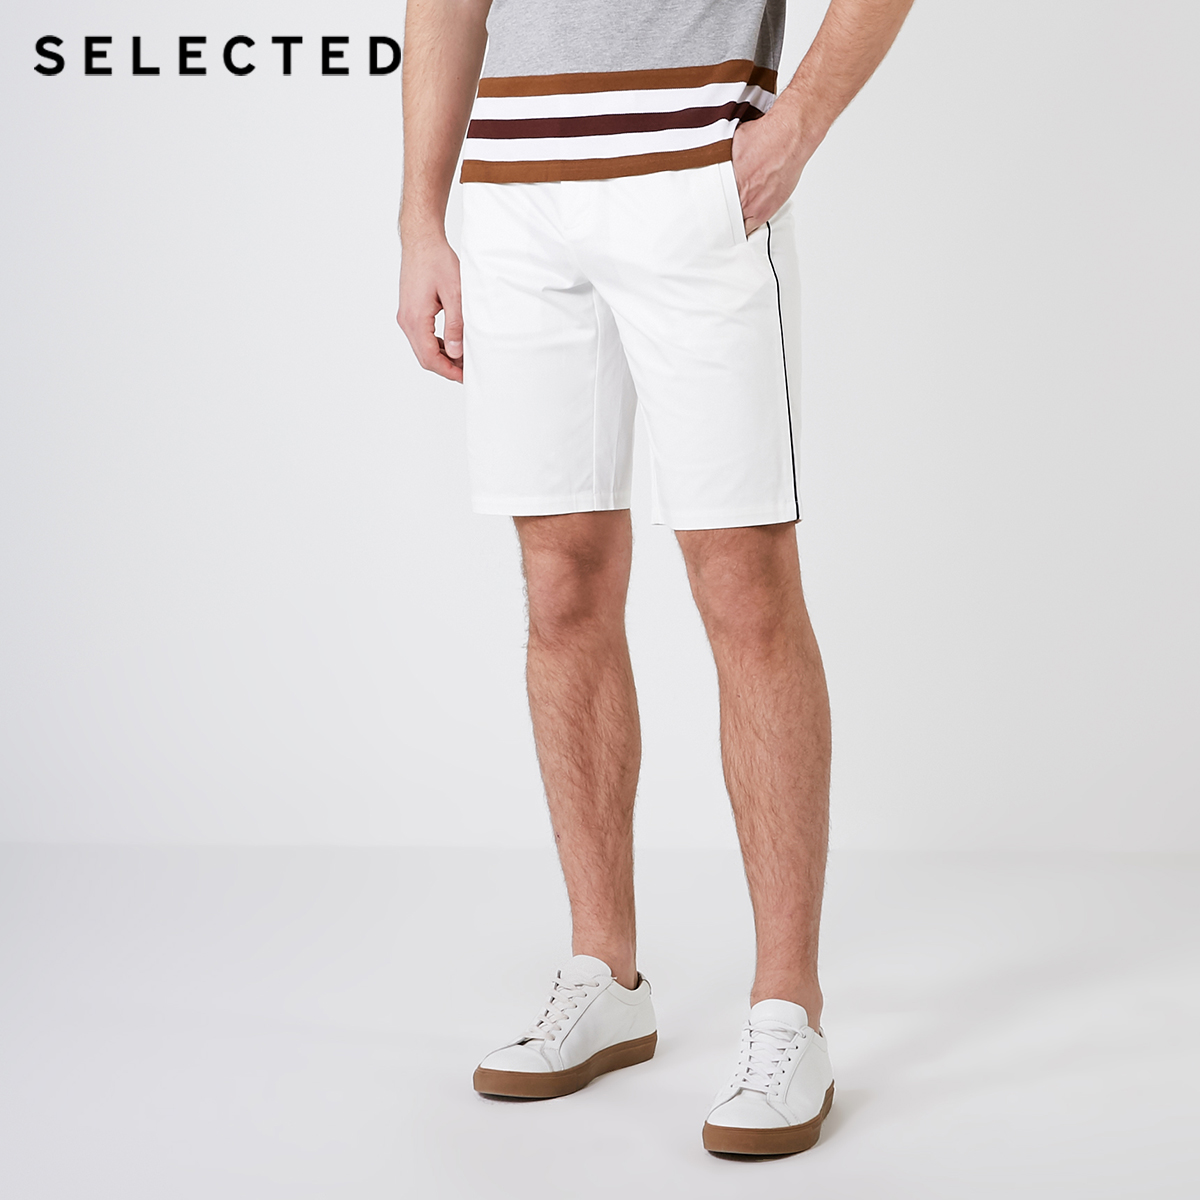 SELECTED Men's Straight Regular Fit Casual White Knee-high Shorts S|4192SH517